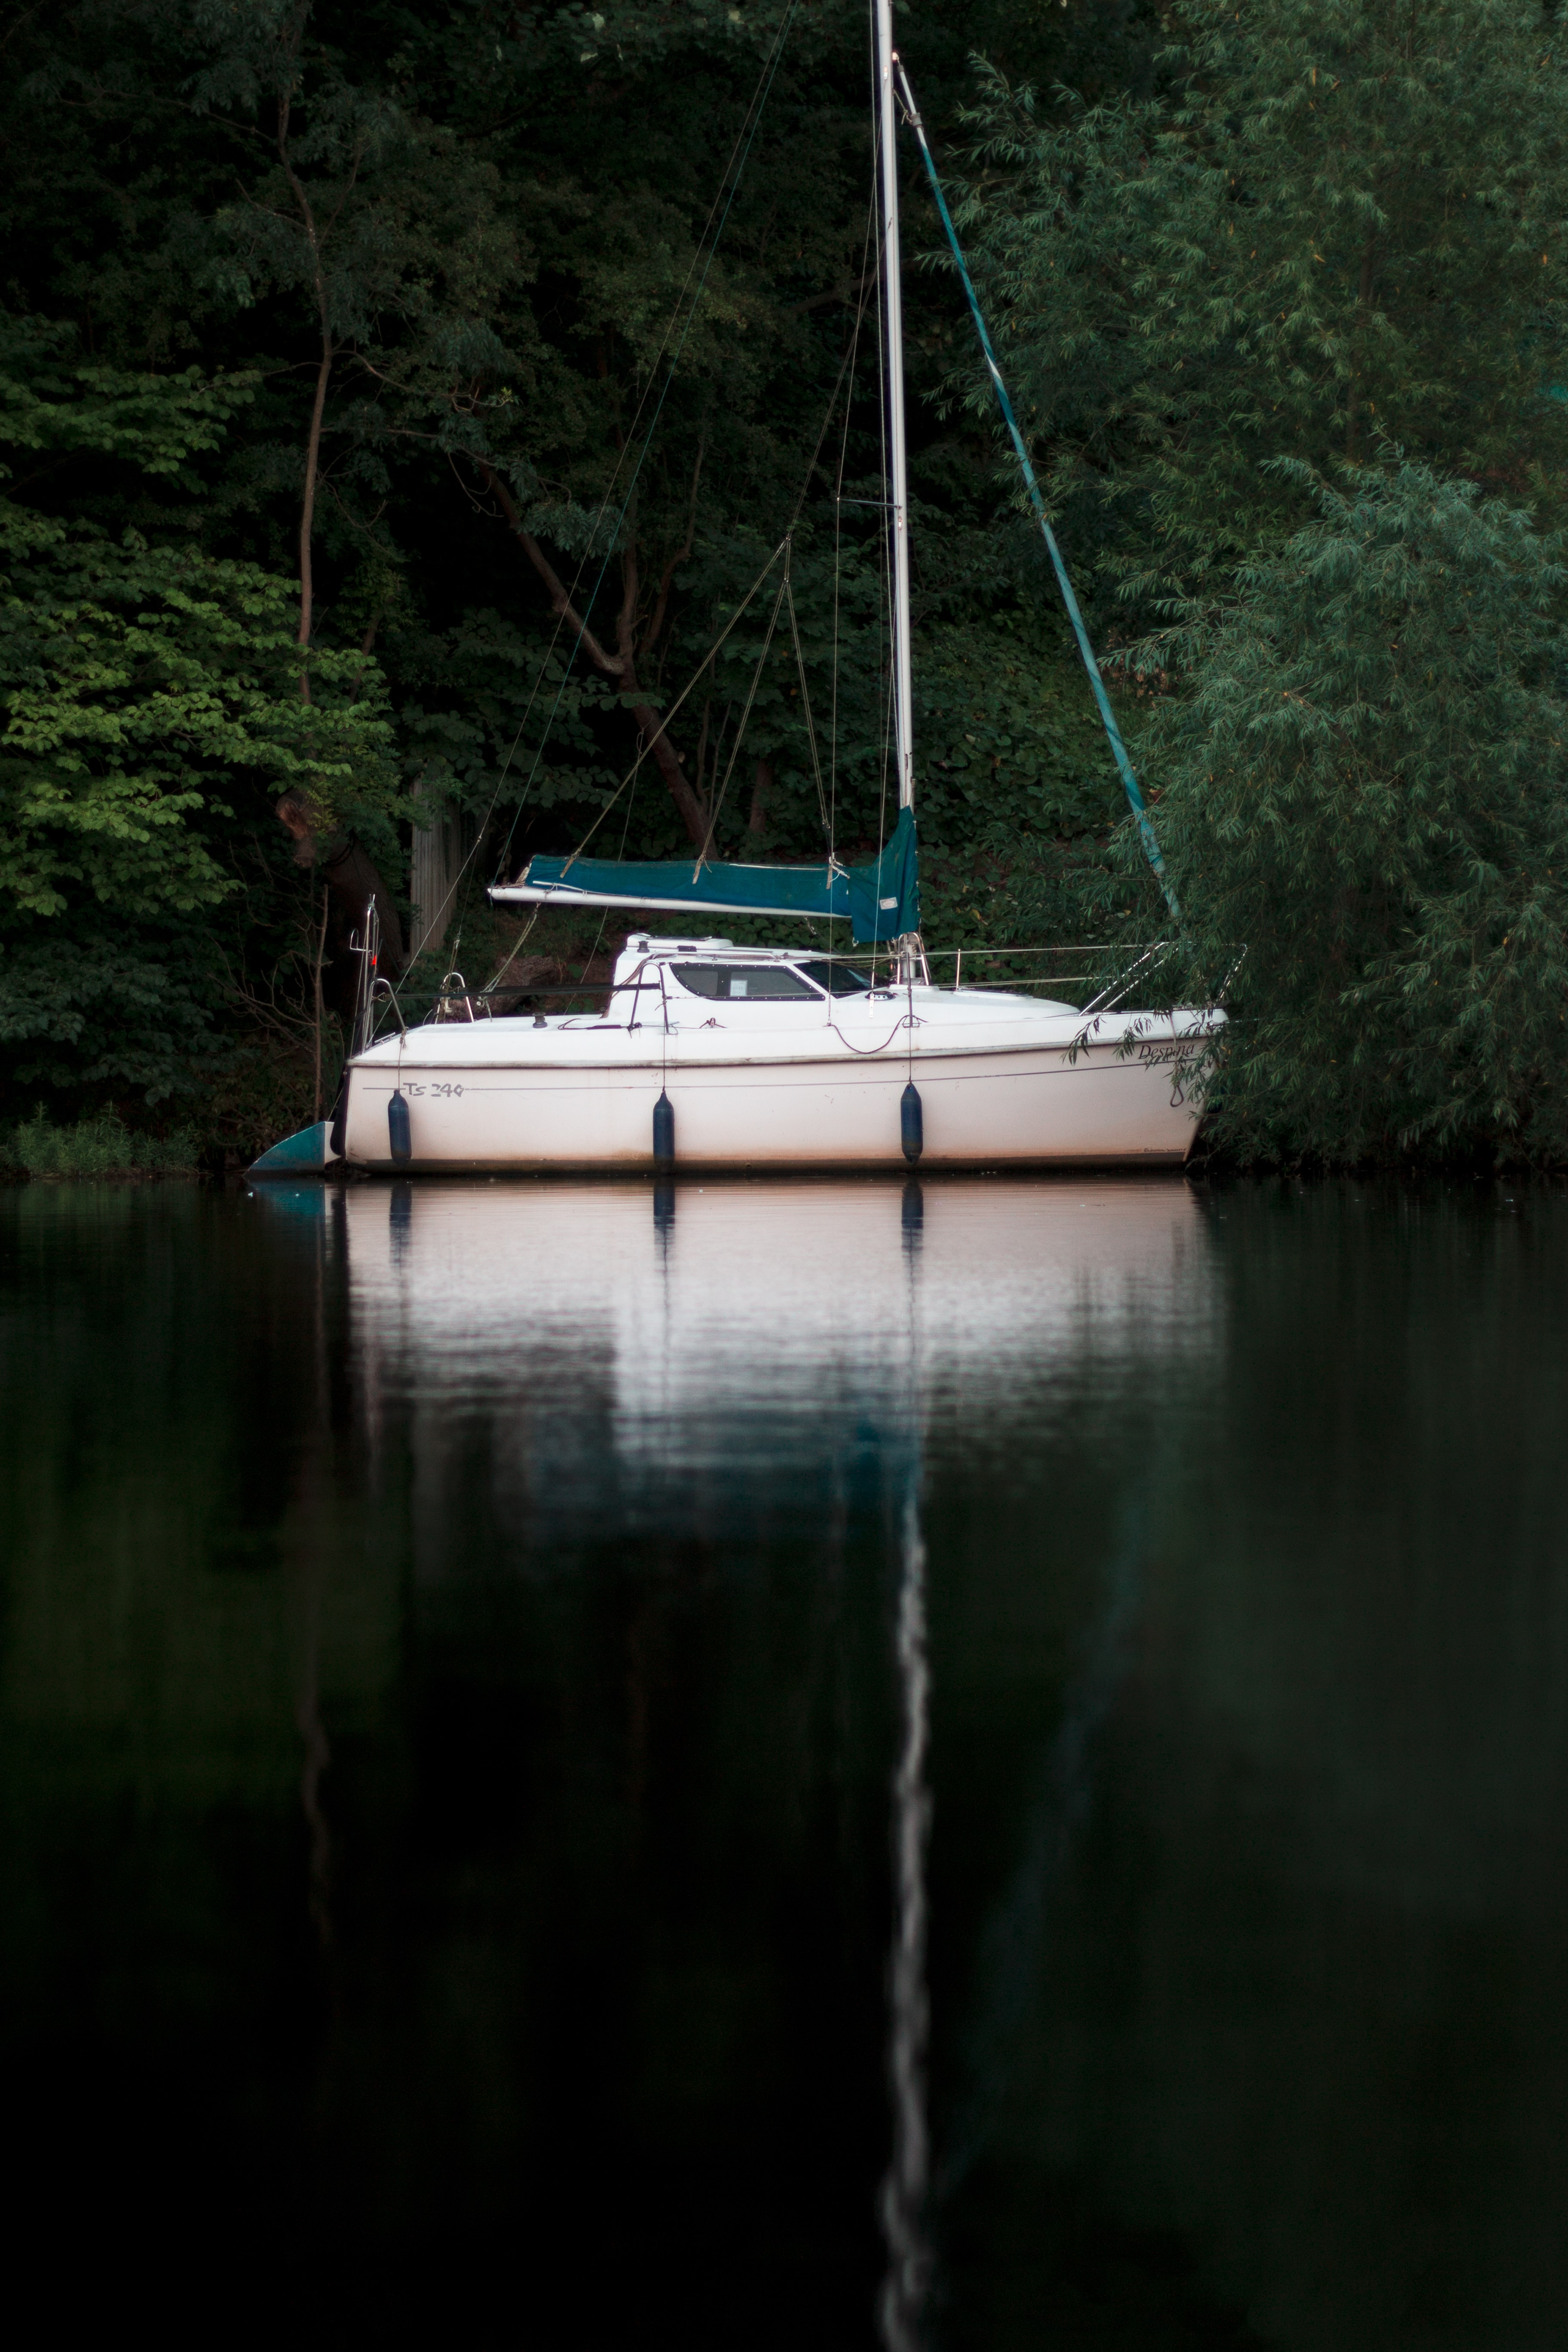 A small yacht moored at the shore of a lake